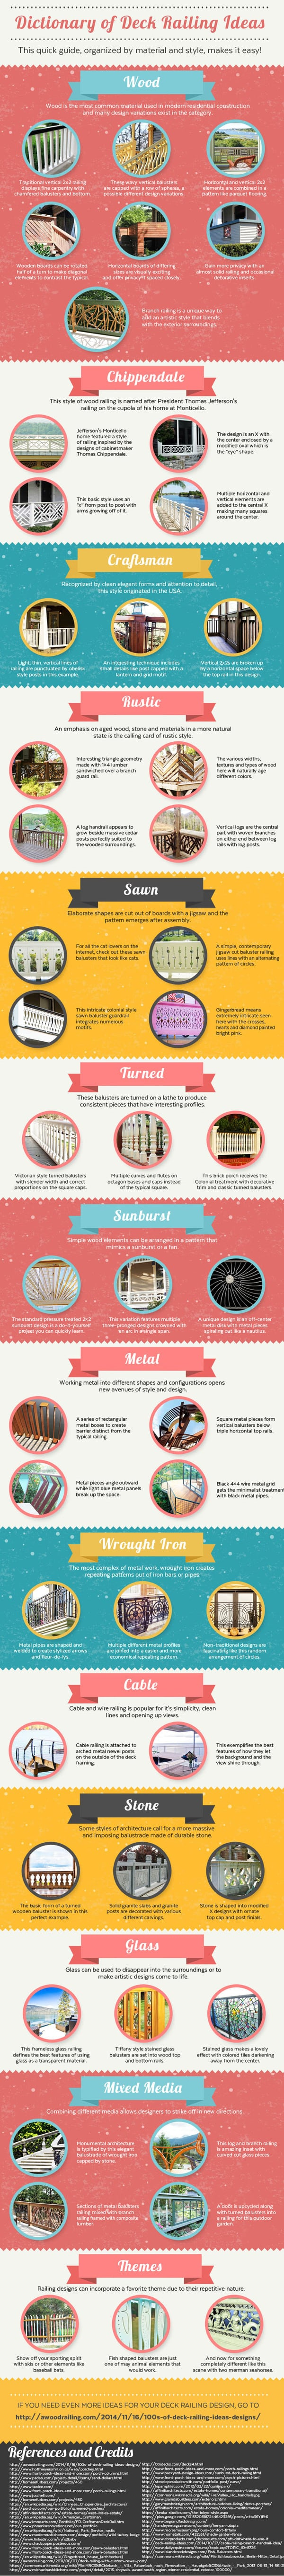 Awesome Guide to Deck Railing Designs